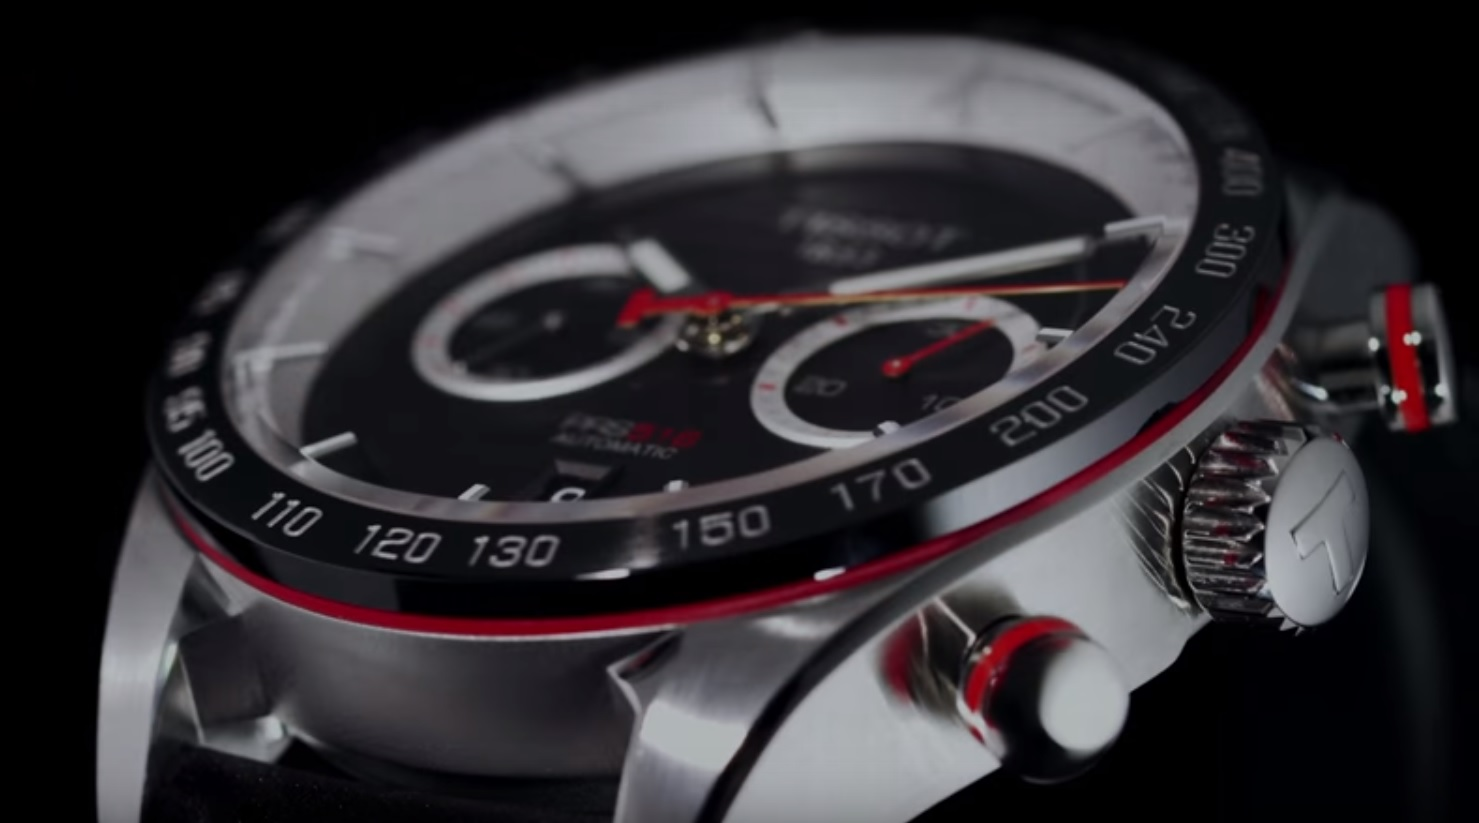 Tissot_PRS516_from_video